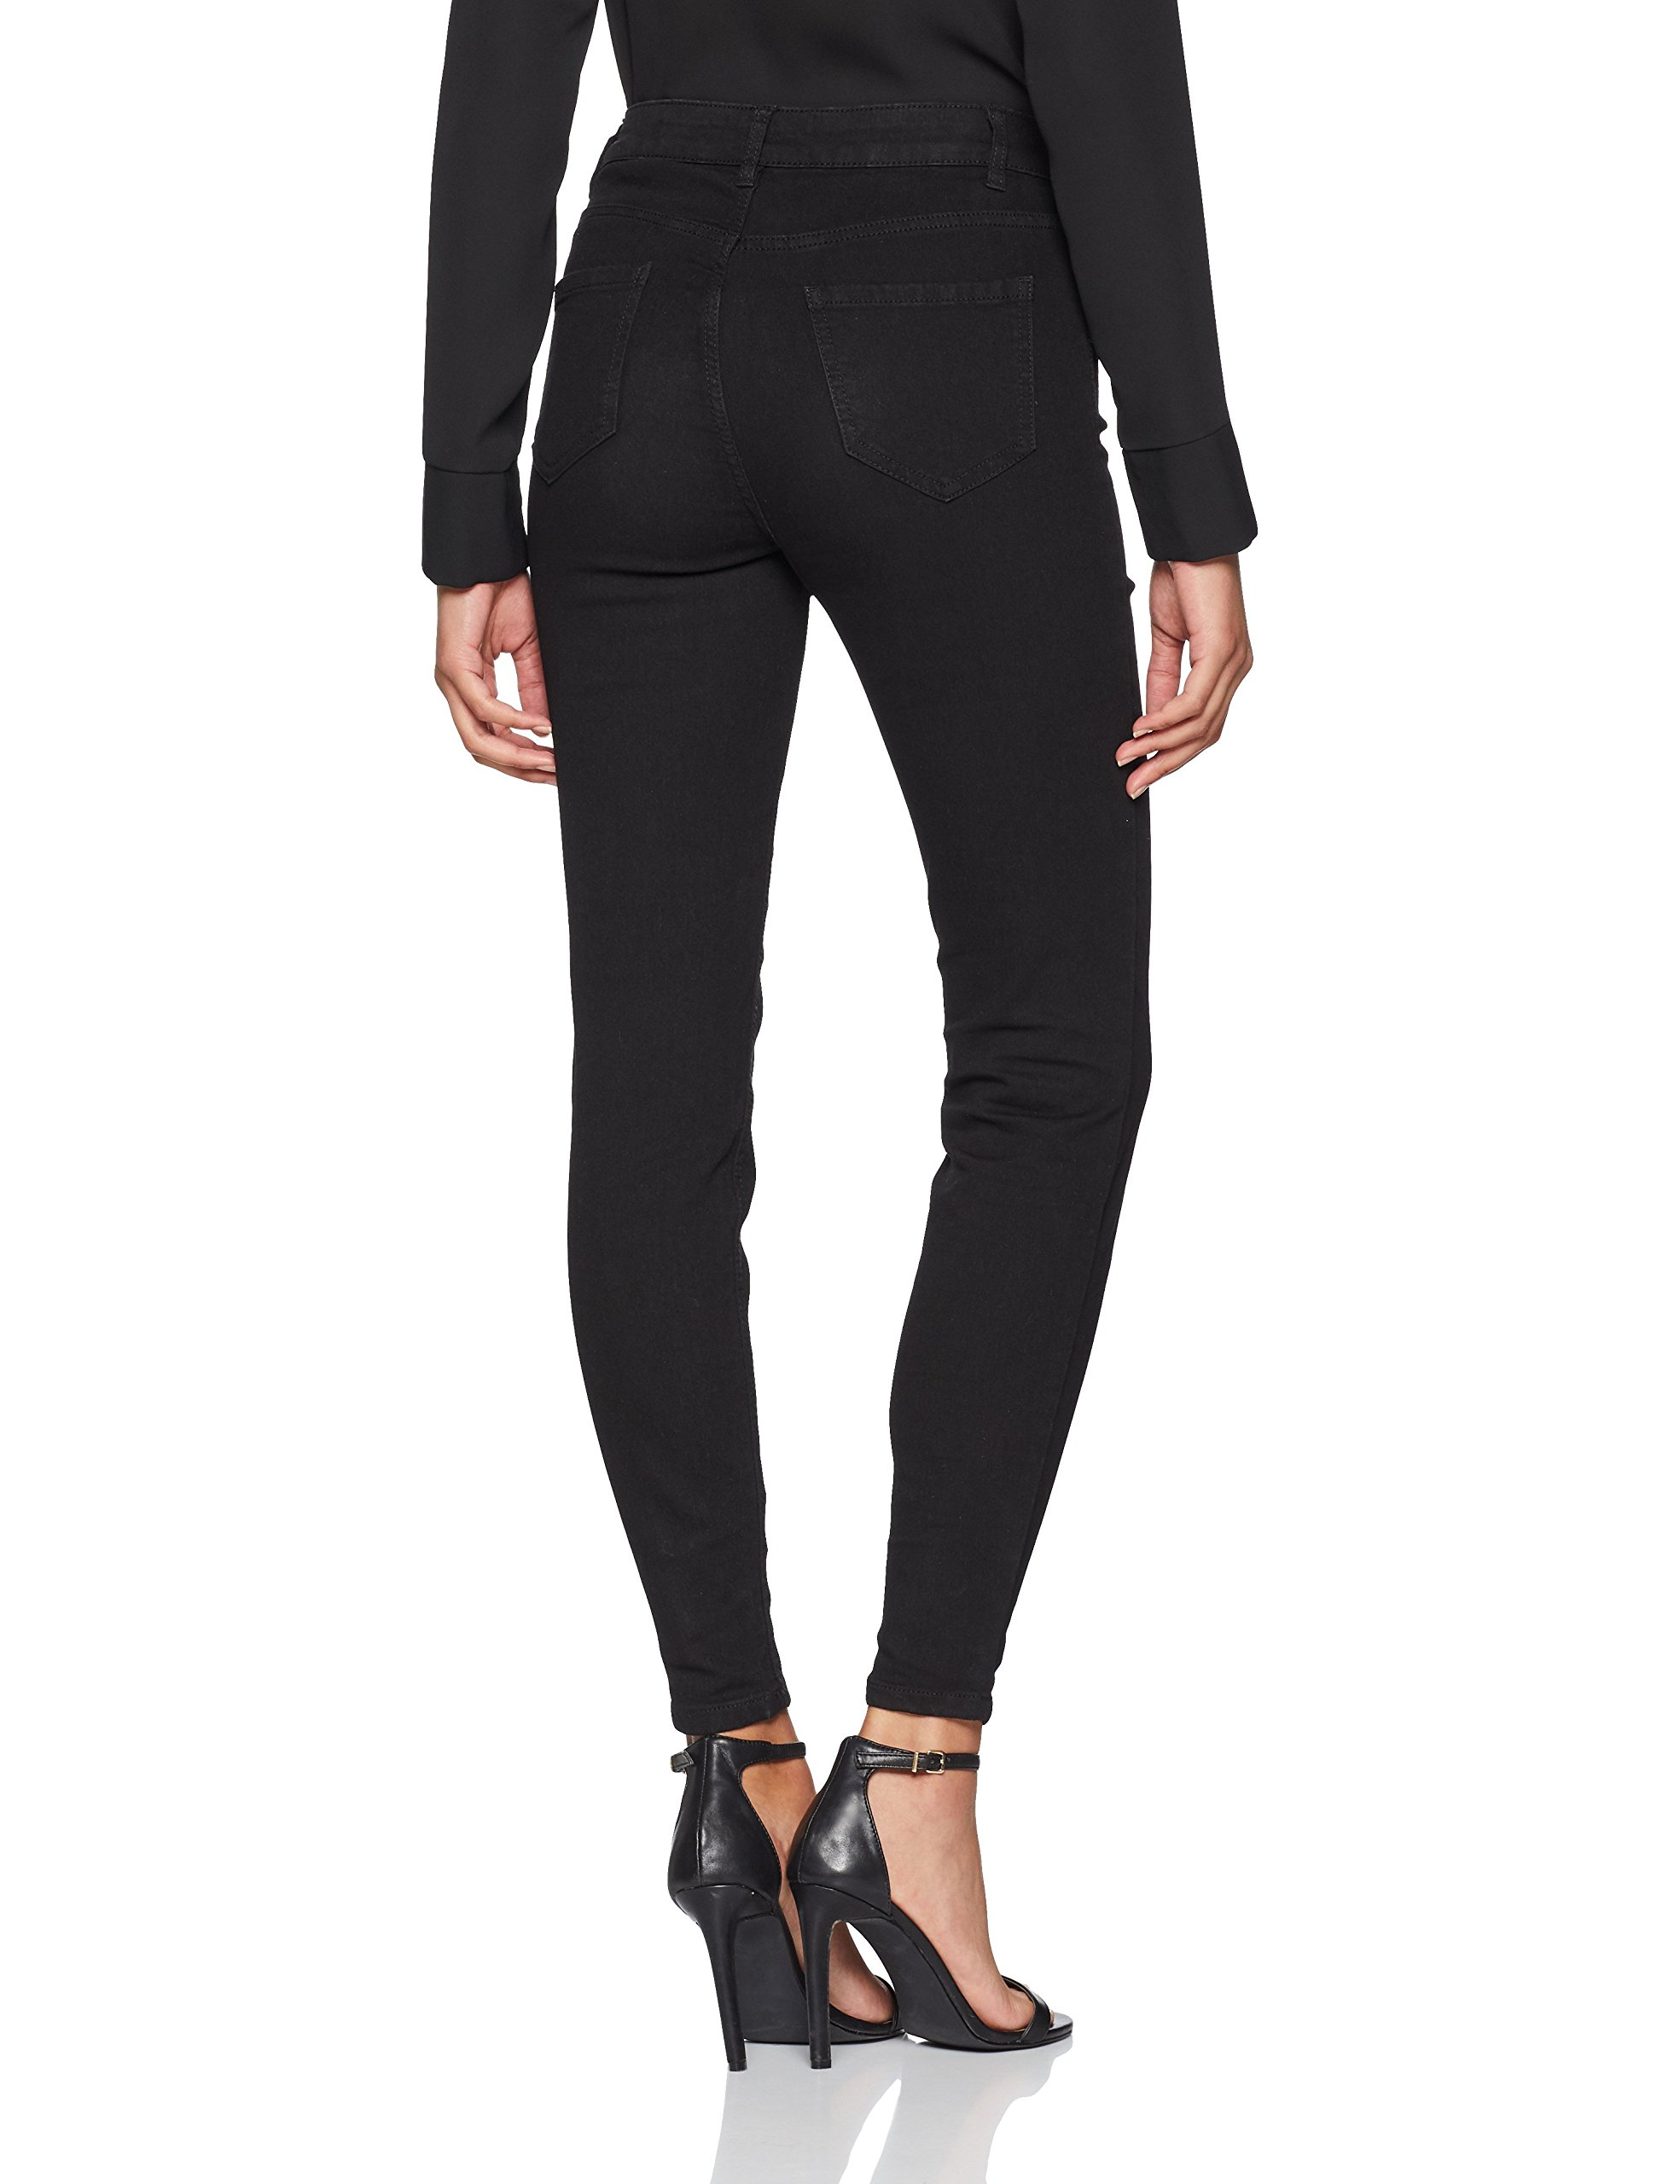 New Look Women's Skinny Jeans 61